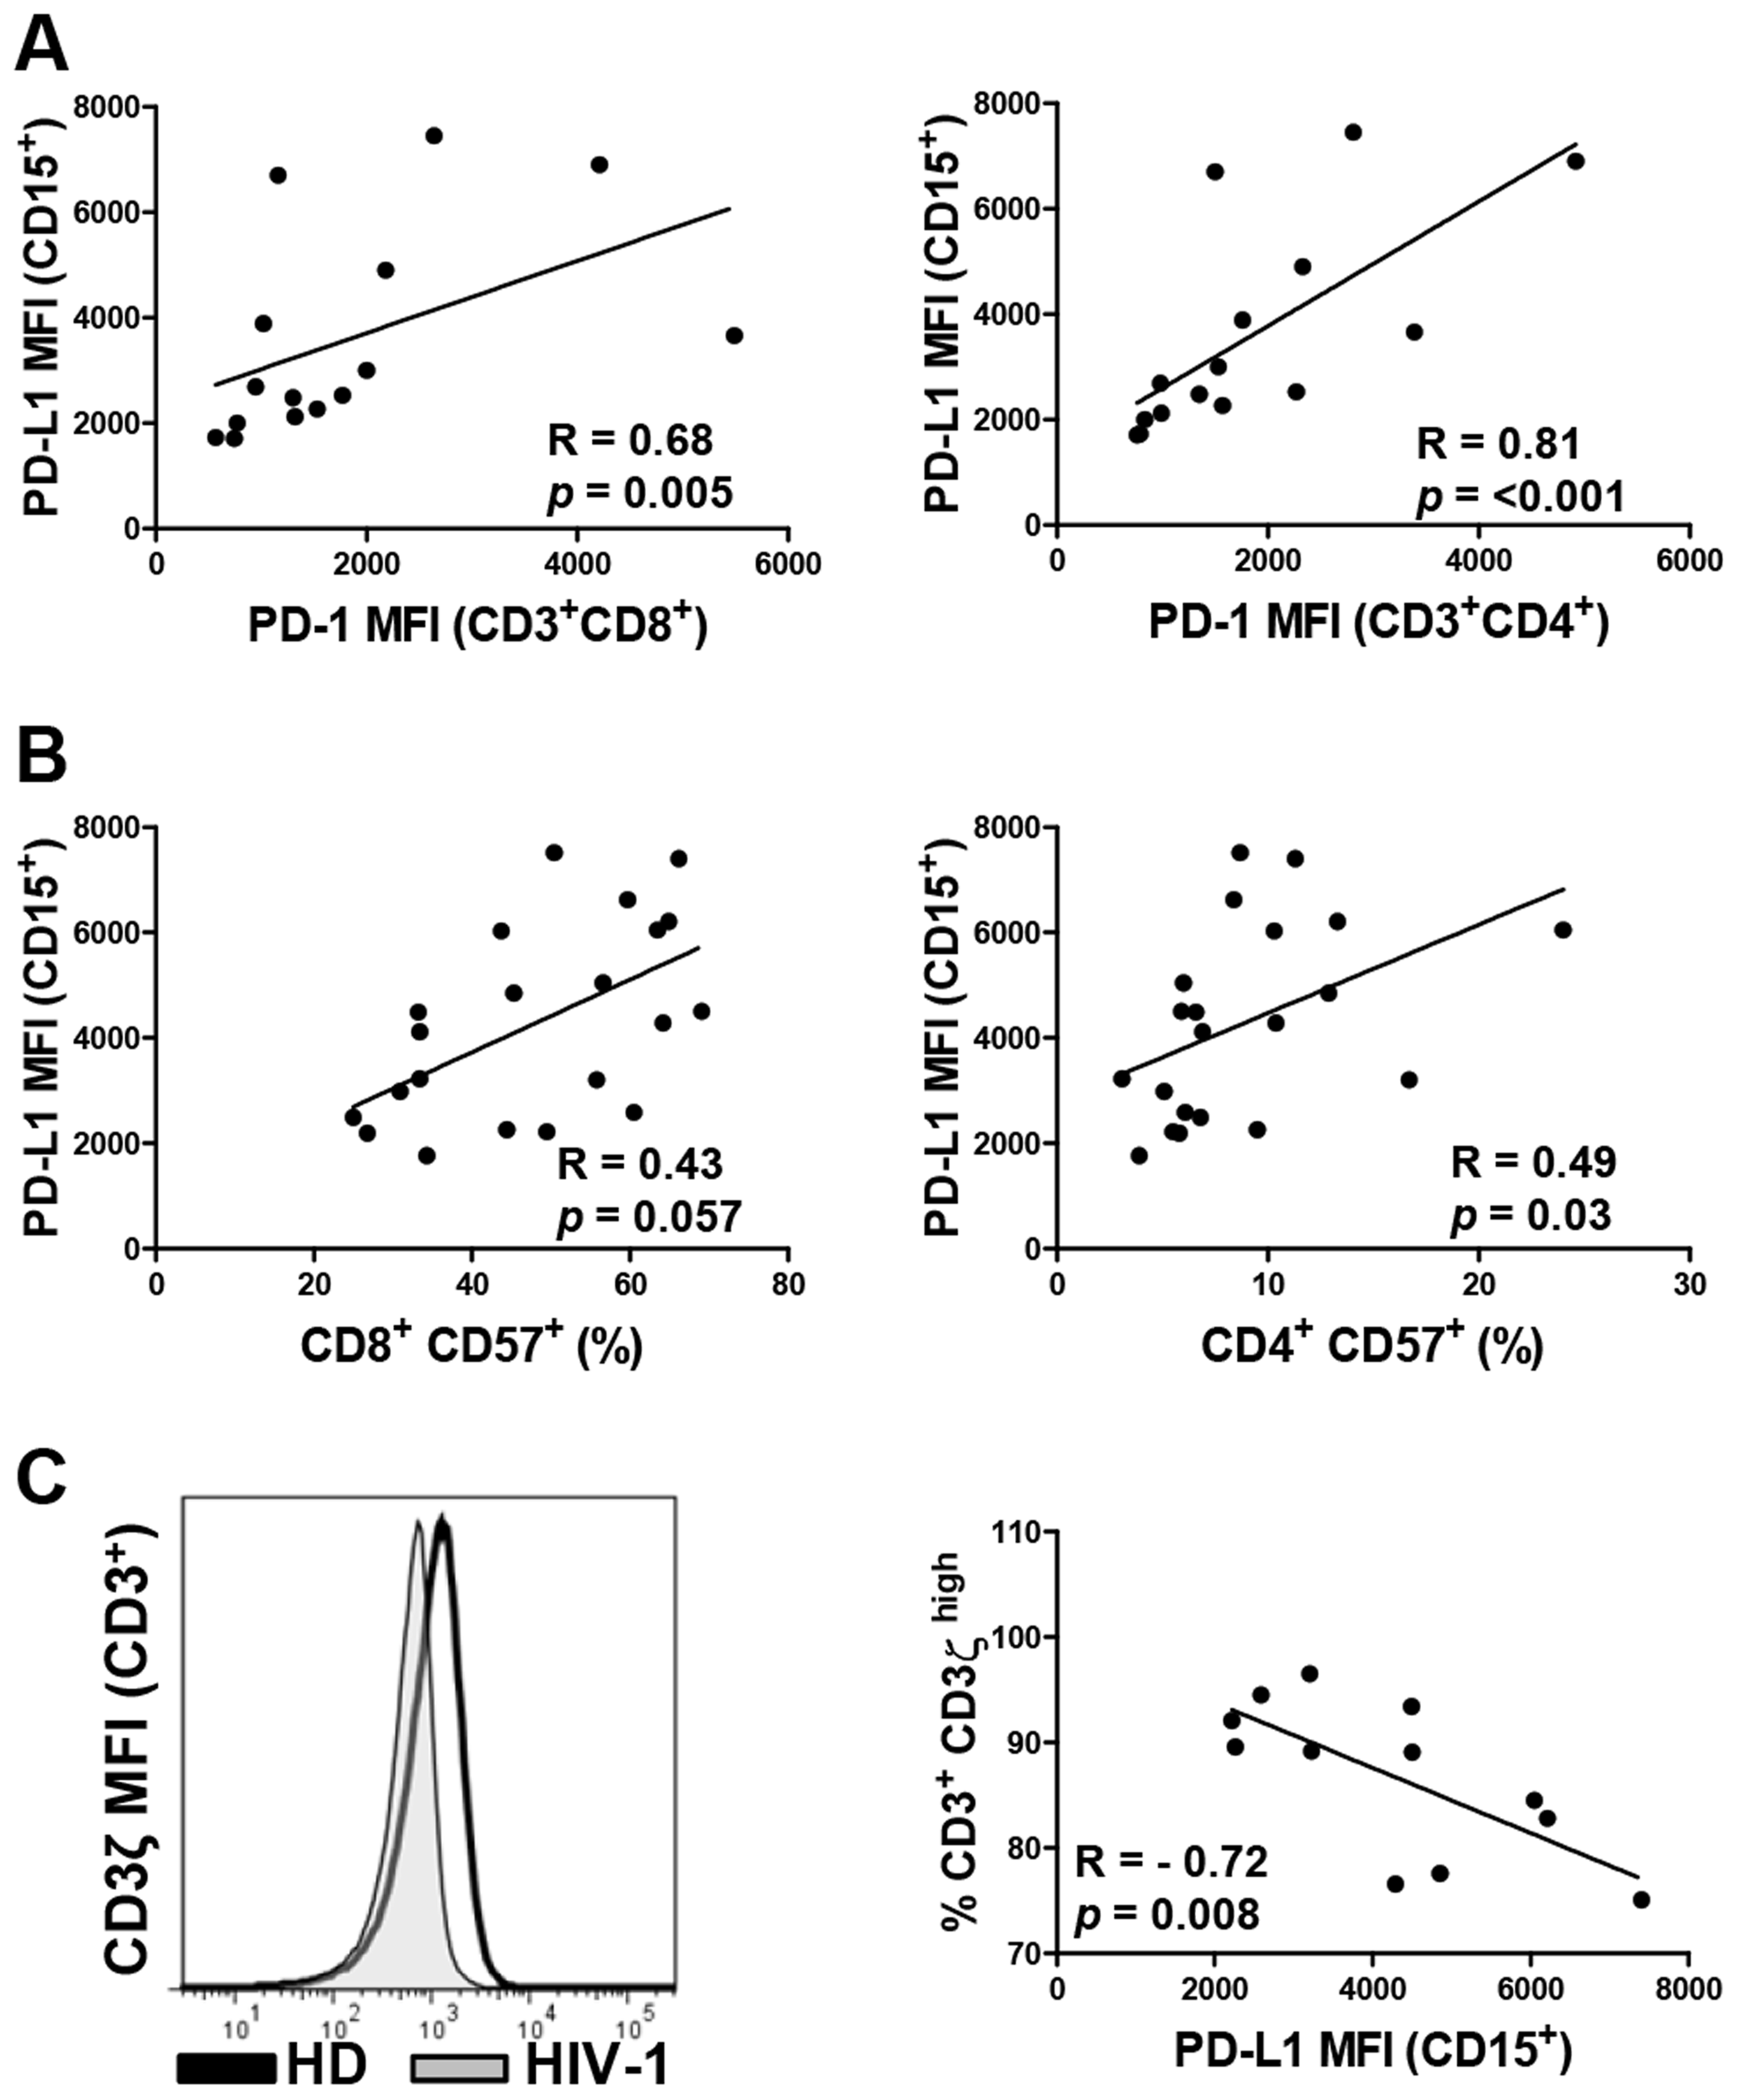 PD-L1 expression on neutrophils correlates directly with PD-1 and CD57 expression on T cells and inversely with the expression of CD3ζ chain on T cells.